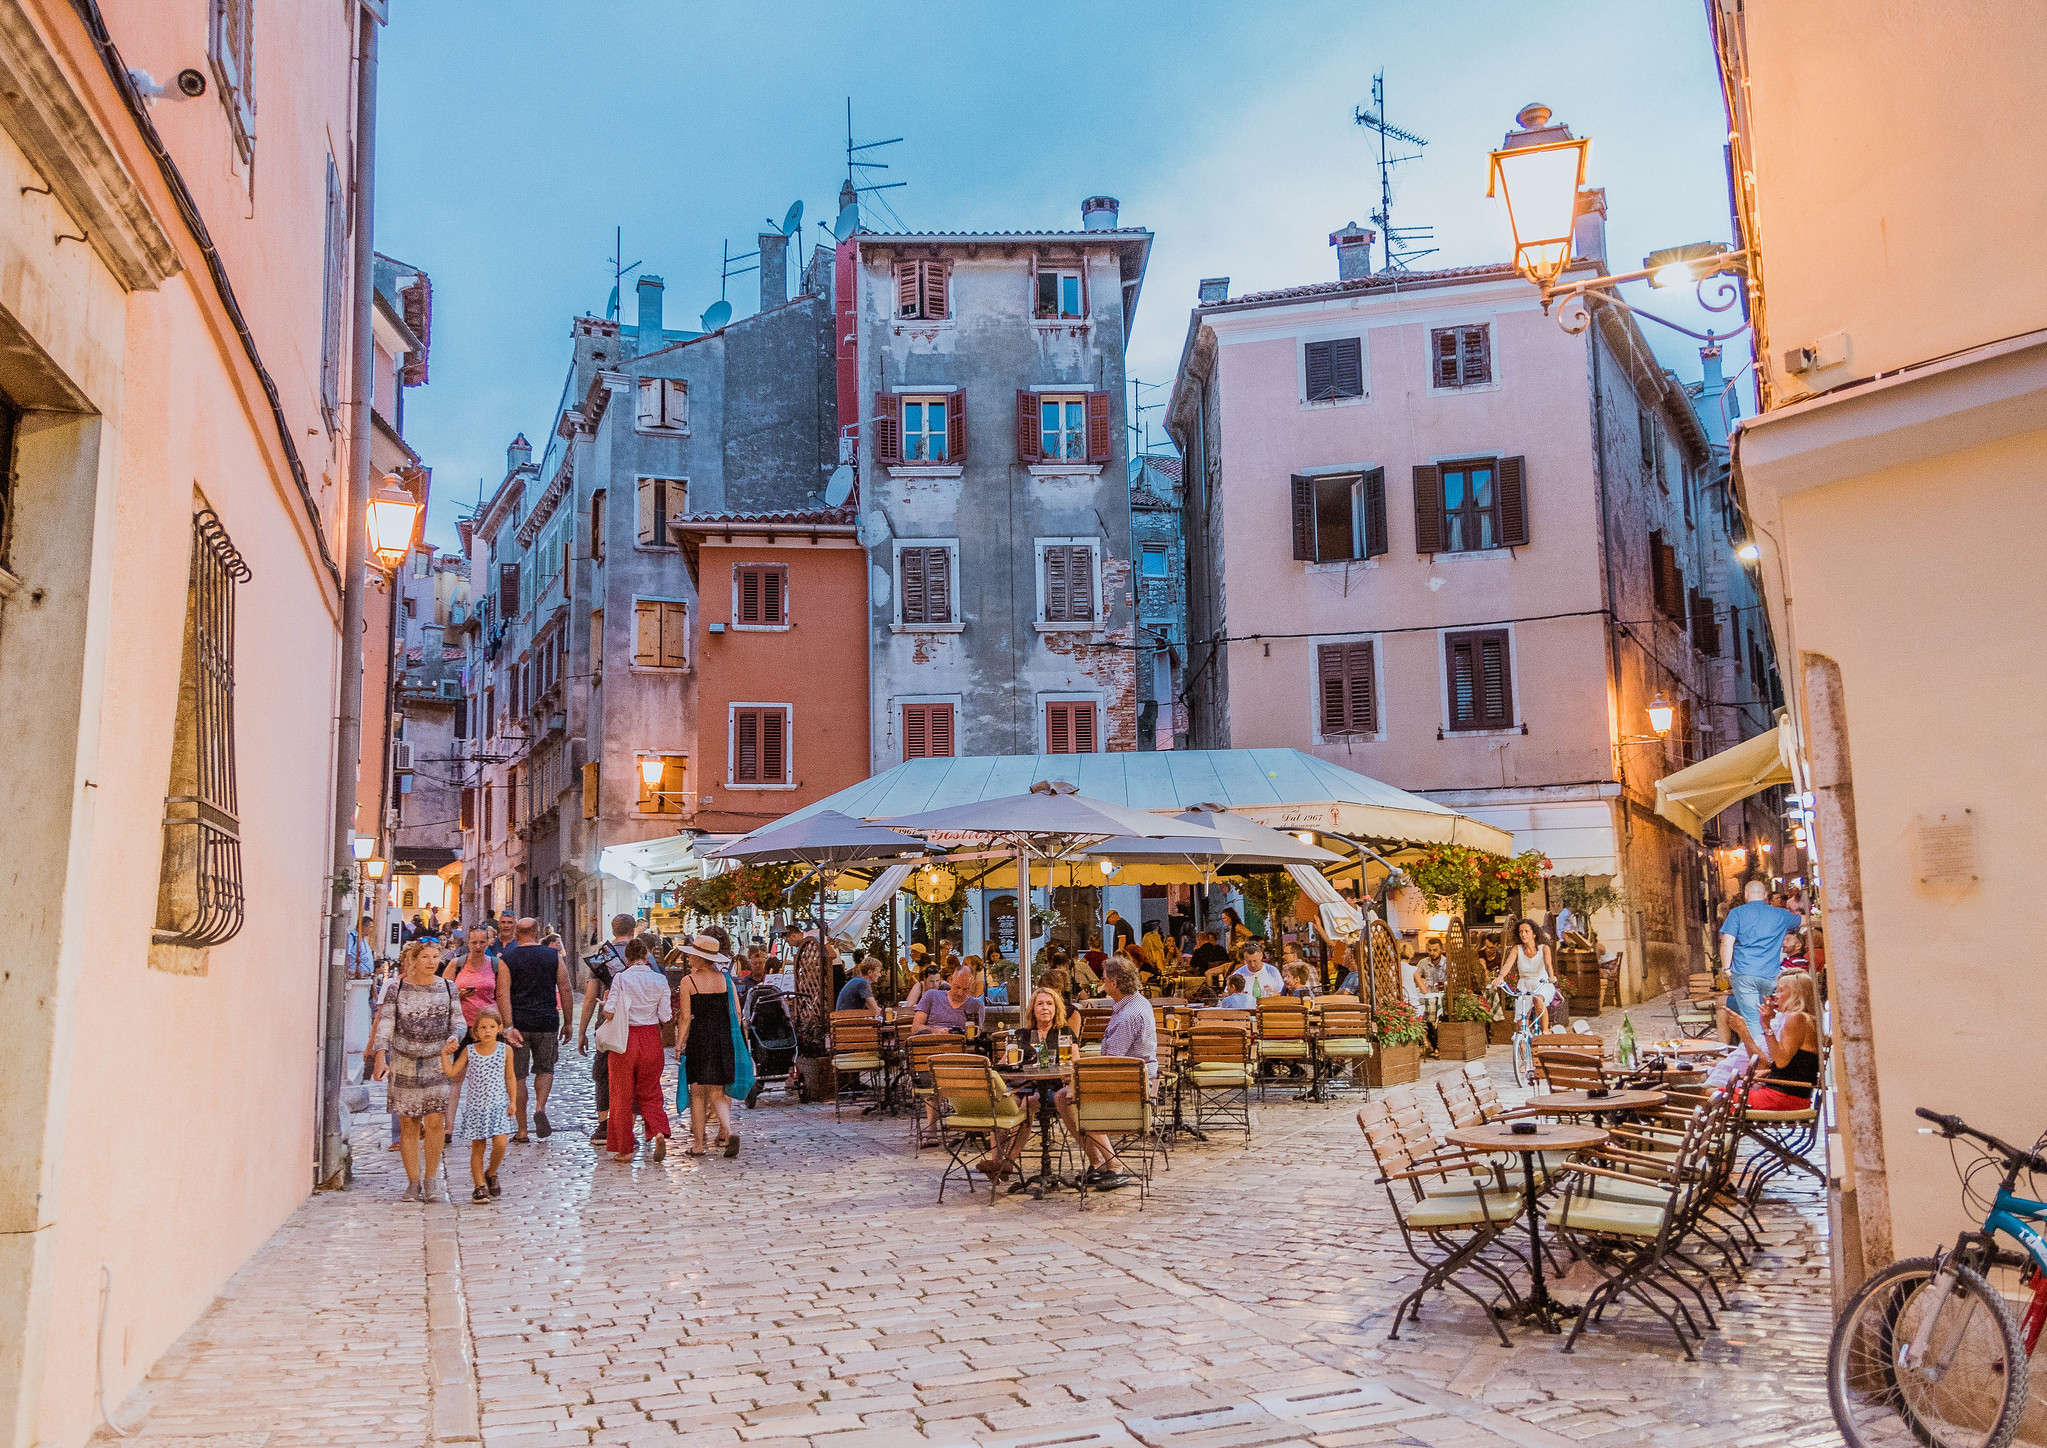 10 Best Things to do in Rovinj, Croatia